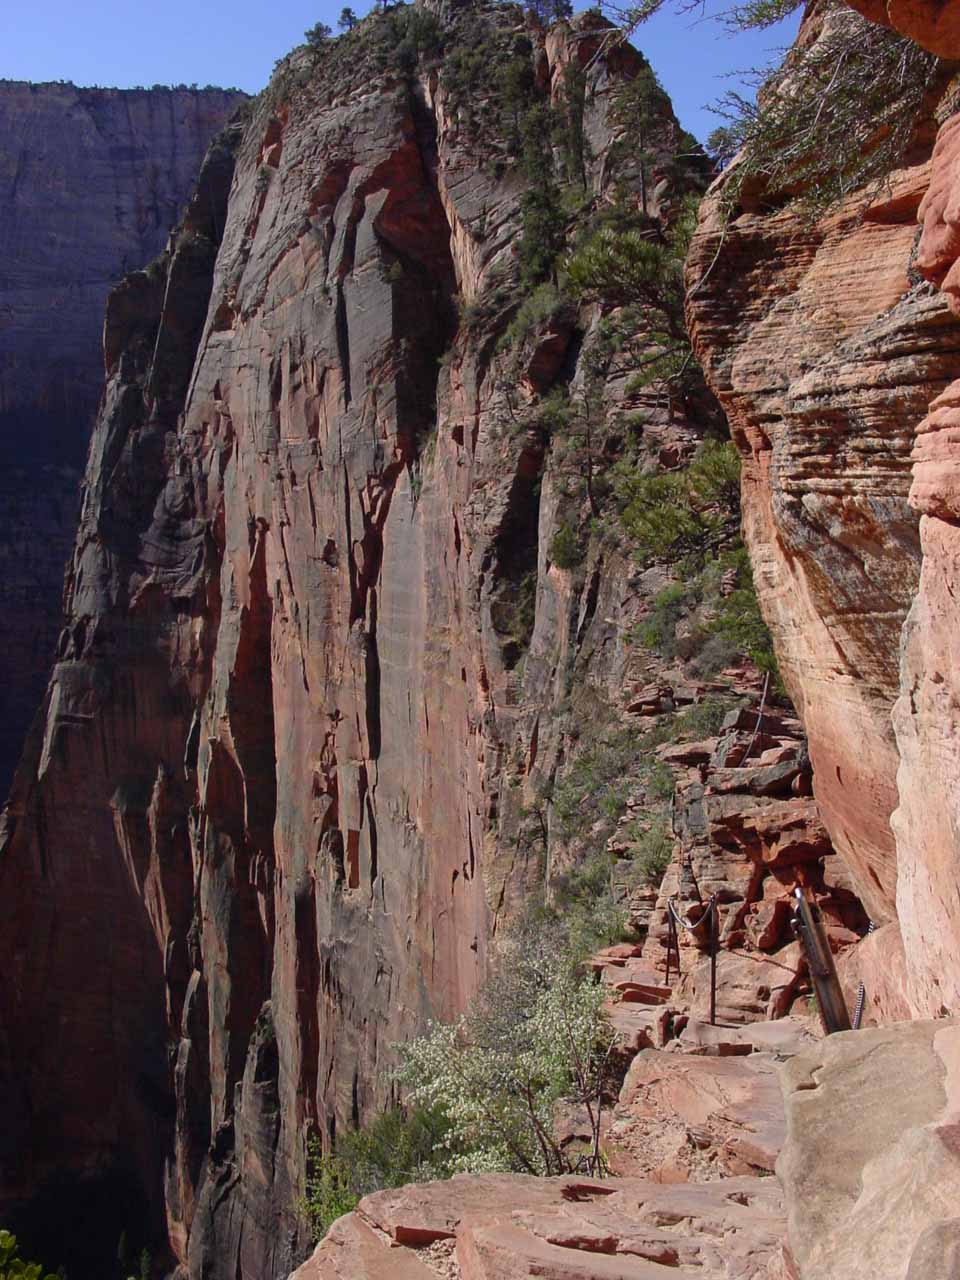 Severe cliff exposure as we attempted the final quarter-mile scramble to the summit of Angel's Landing